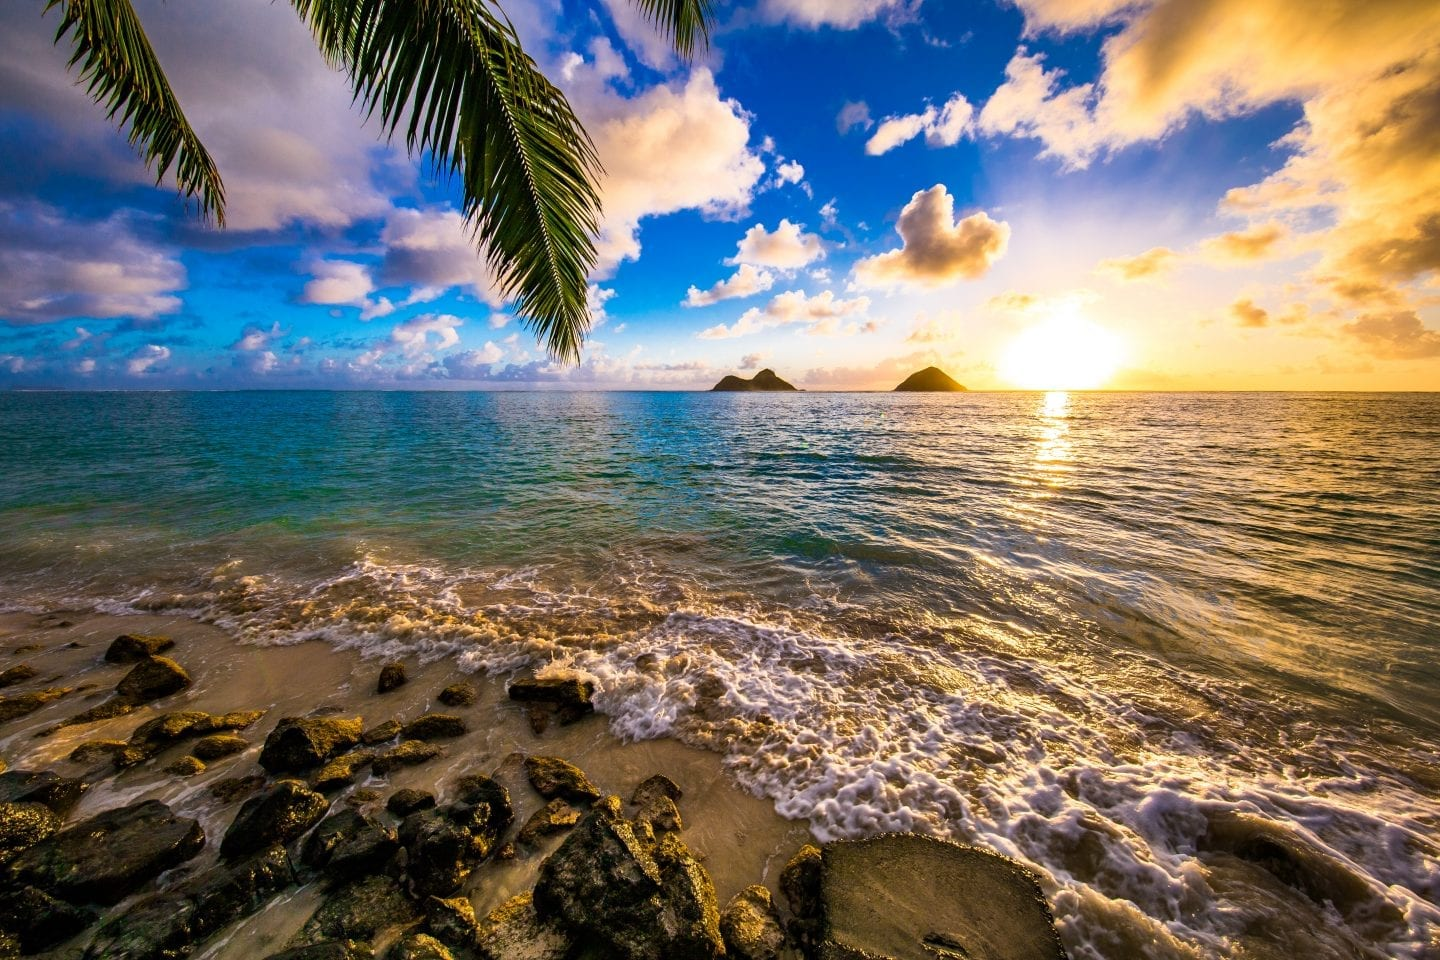 Oahu Beaches: Lanikai Beach